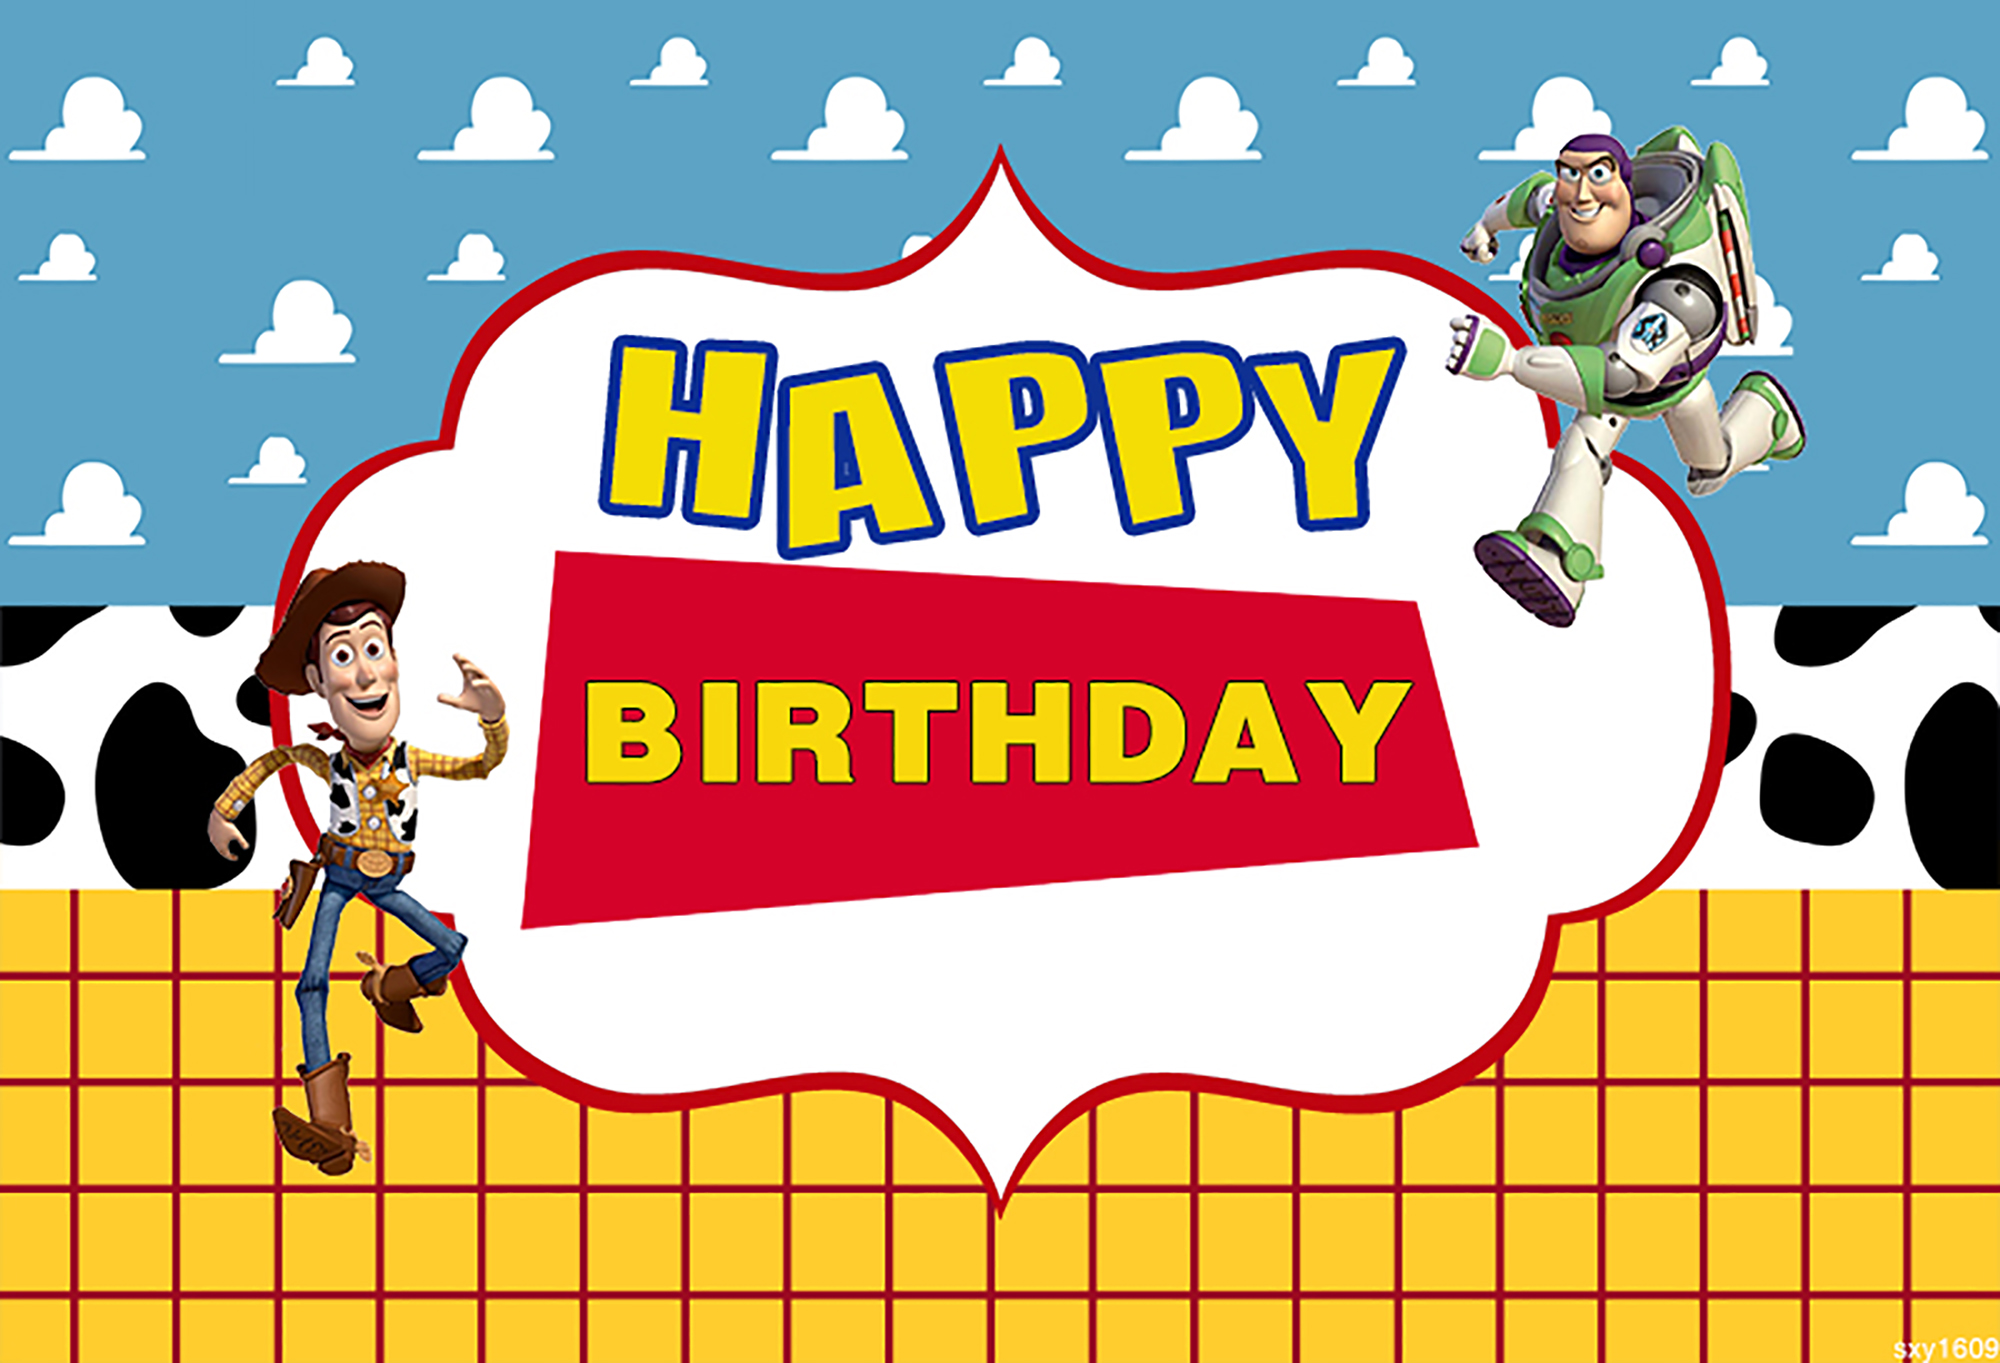 Toy Story Birthday Banner Personalized Party Backdrop PRINTED AND SHIPPED